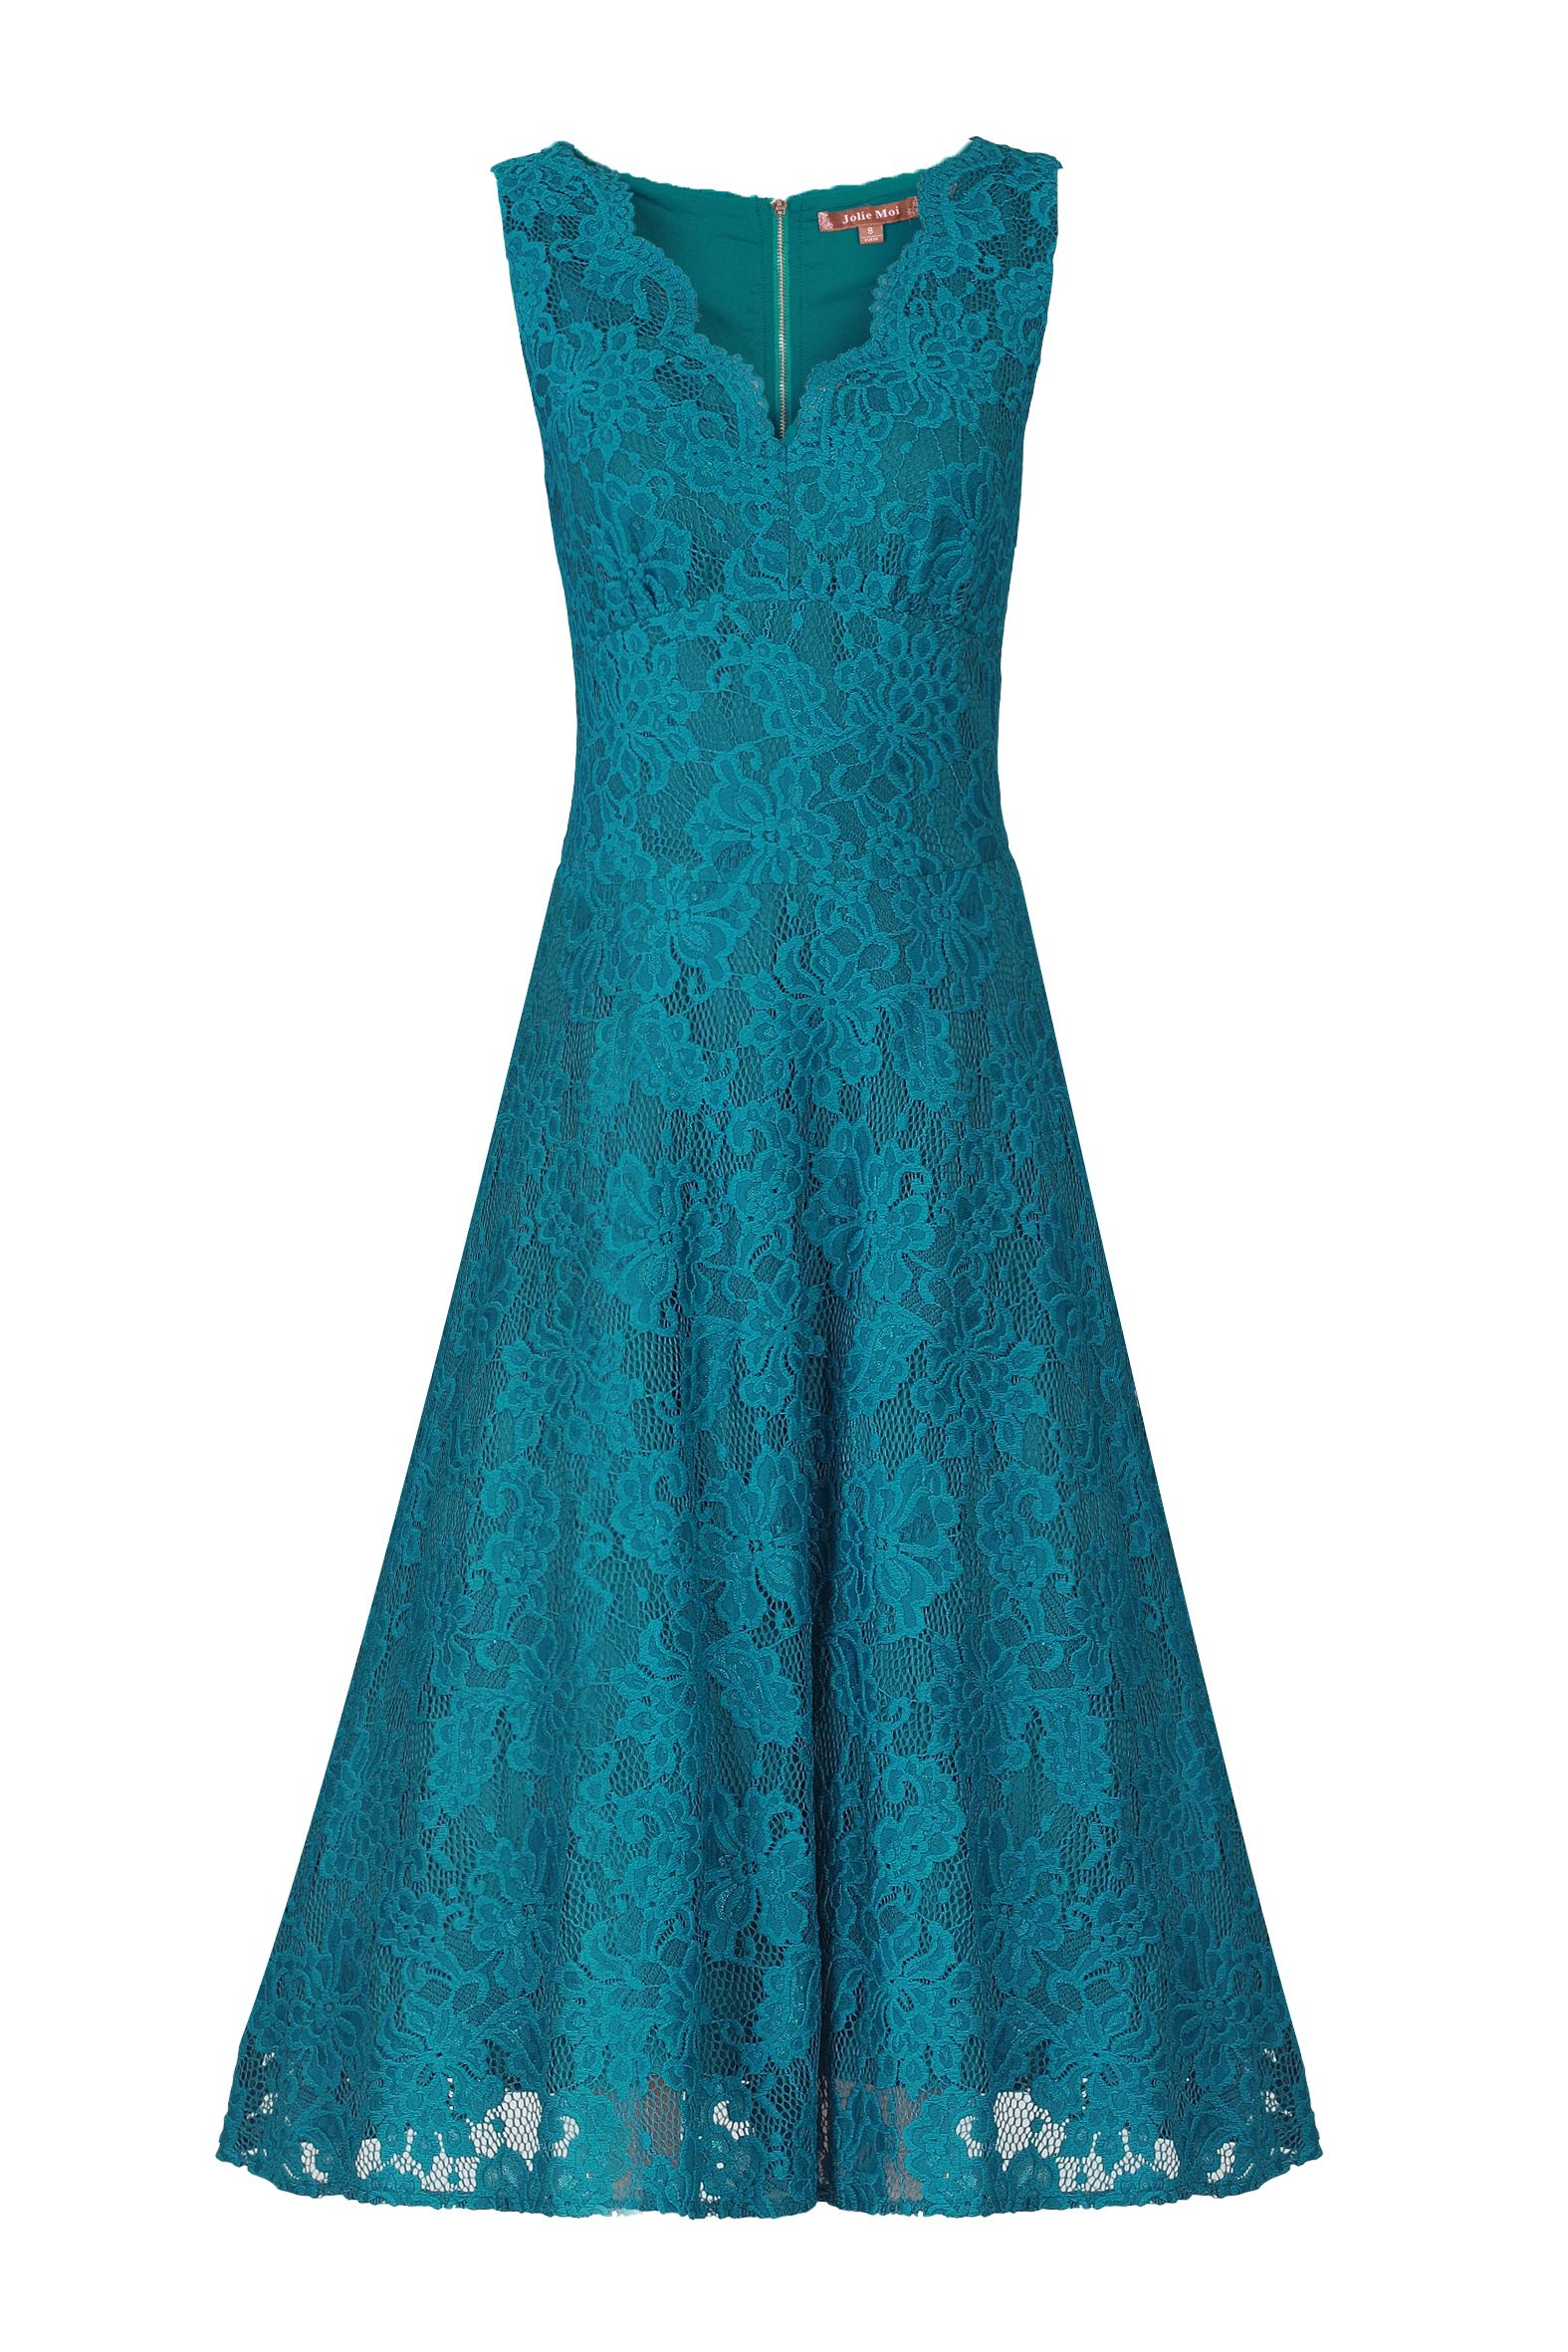 Jolie Moi Scalloped V Neck Lace Dress, Teal